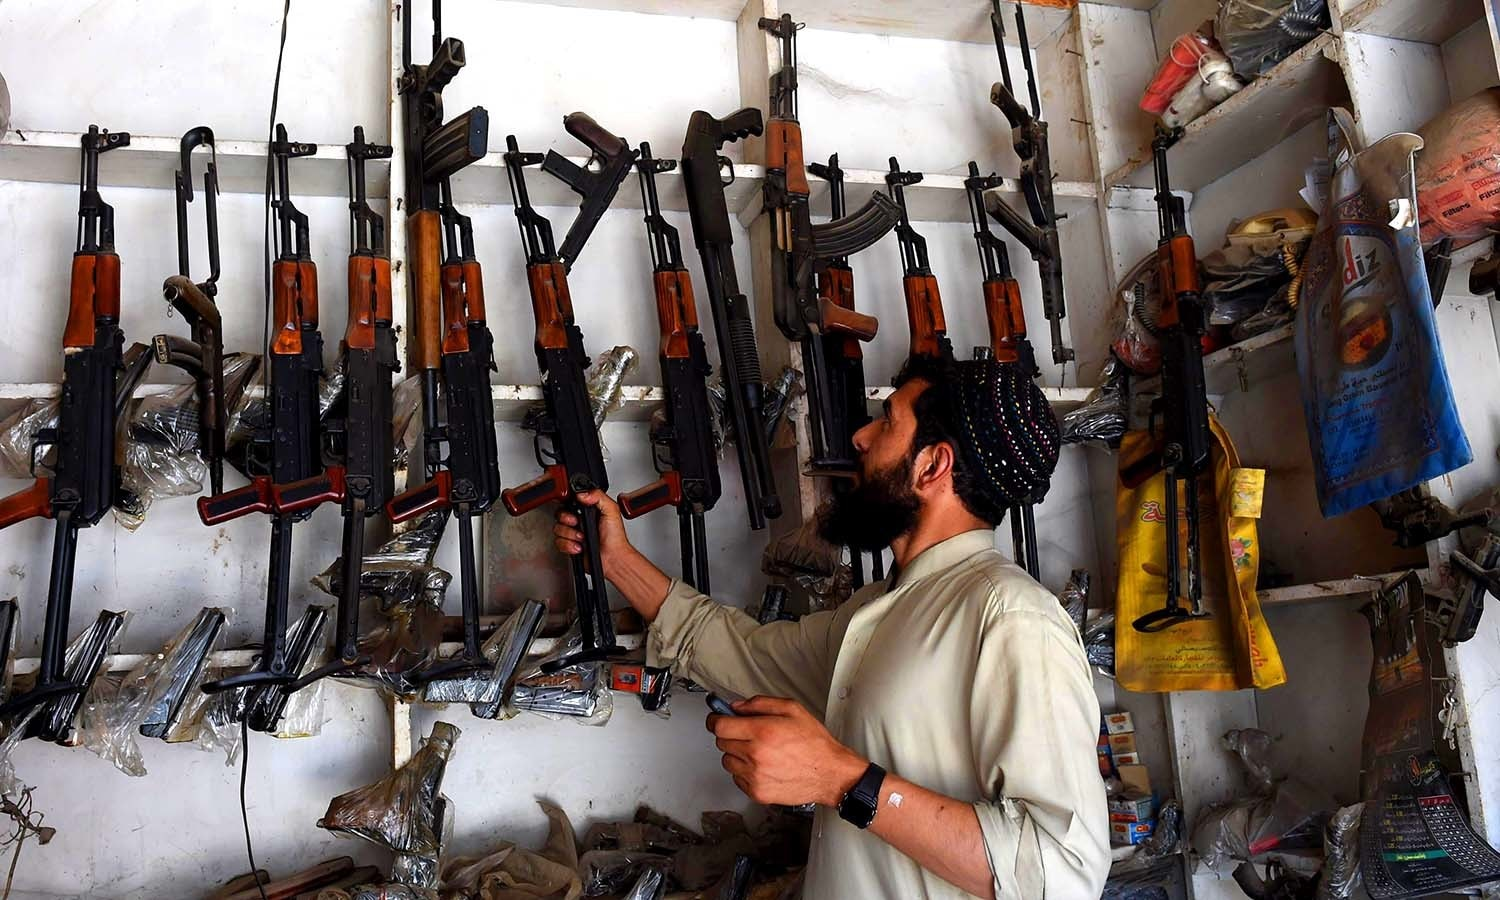 An arms seller picks an assault rifle from a shelf at his shop. ─AFP